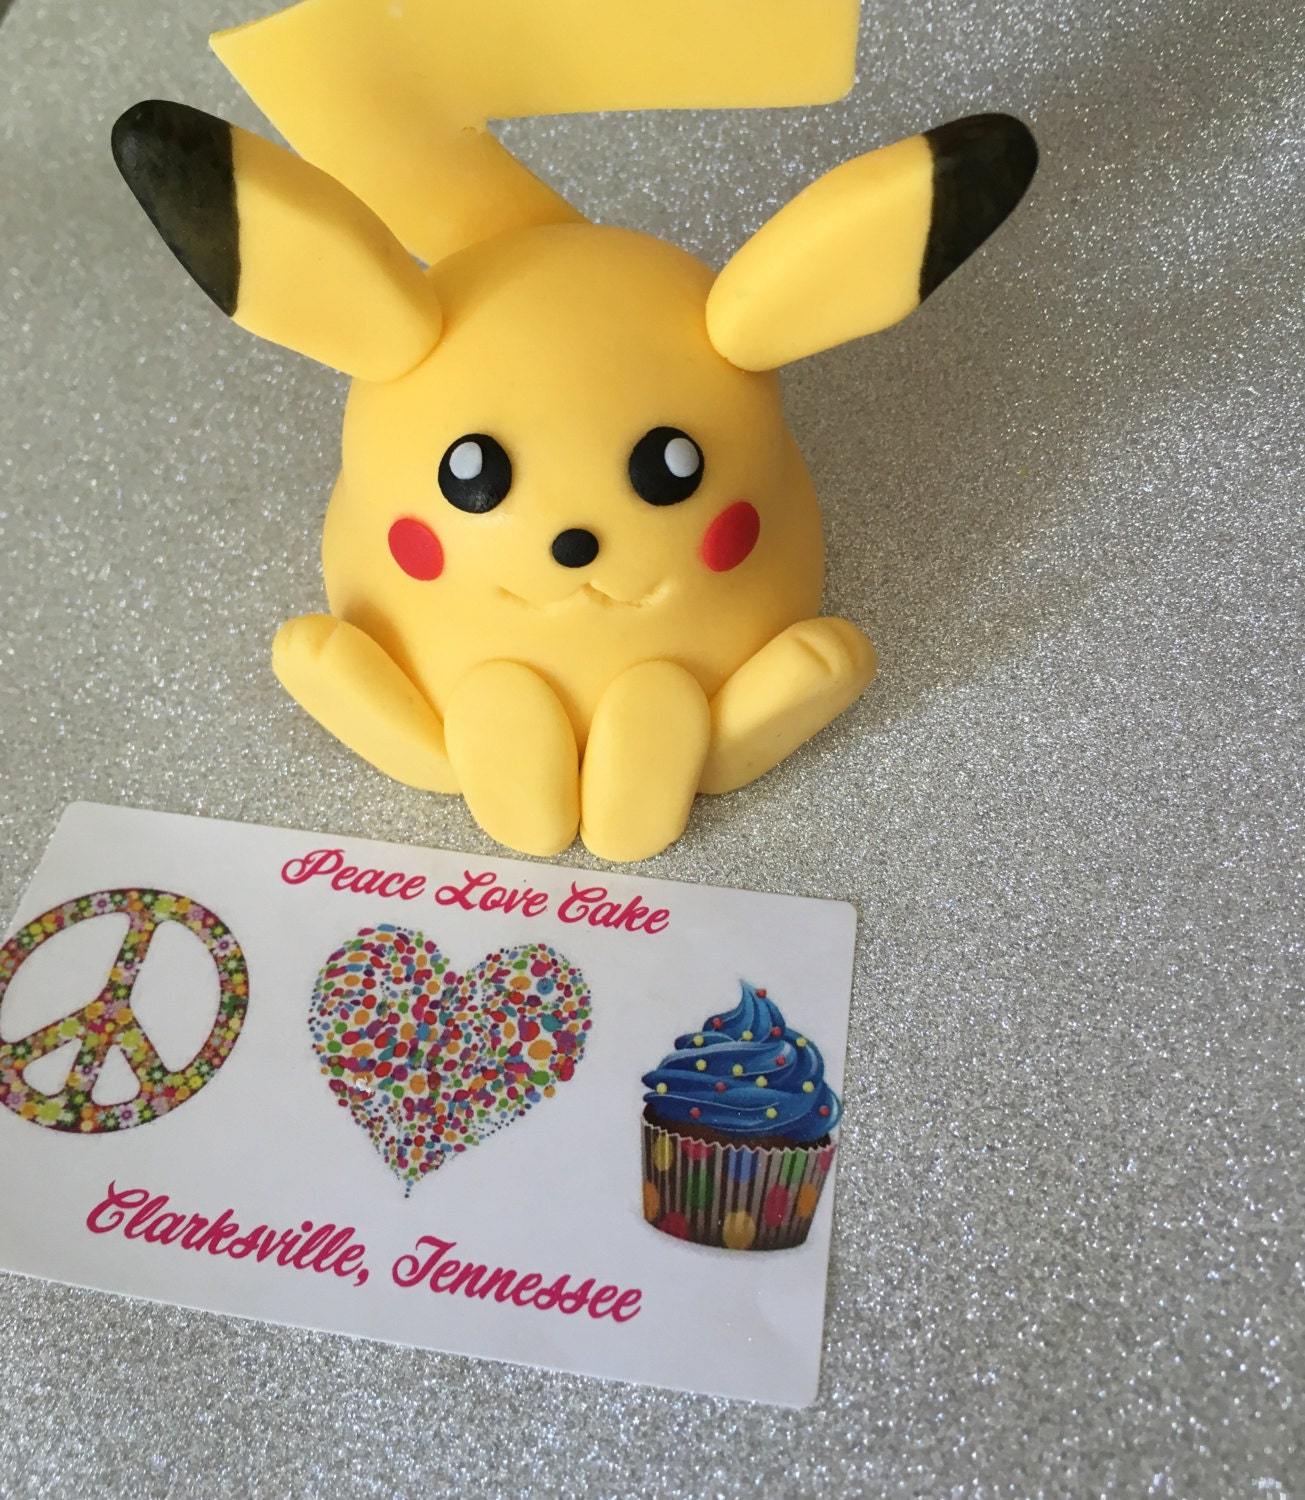 Fondant pikachu Cake Topper/Decoration | Etsy